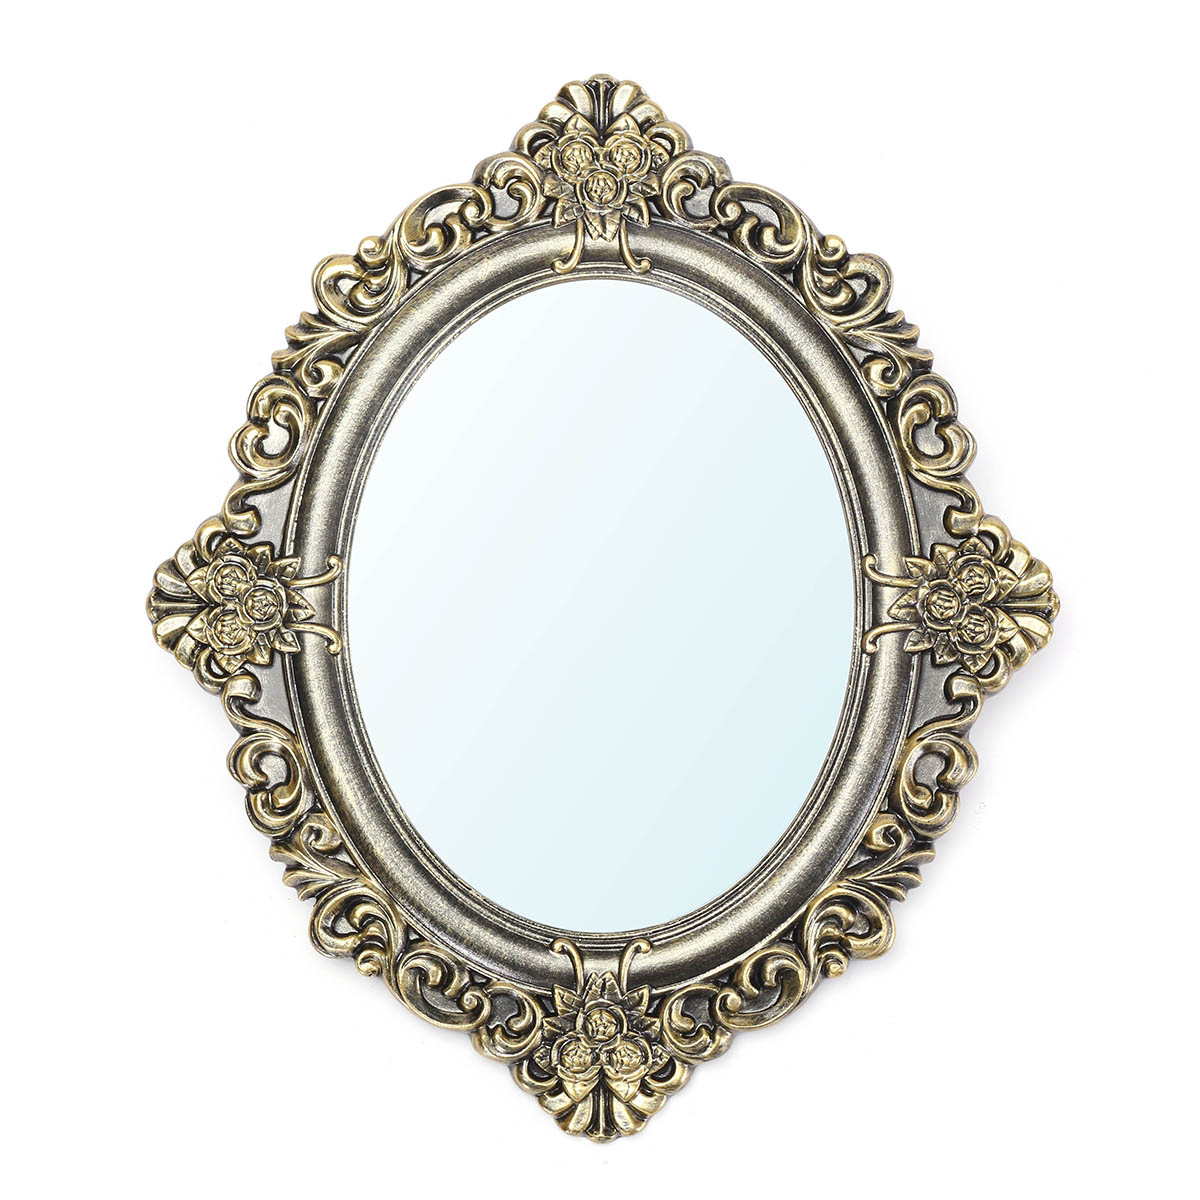 23 Inch Oval Decorative Mirrors Retro Vintage Wall Mouted Bronze ...